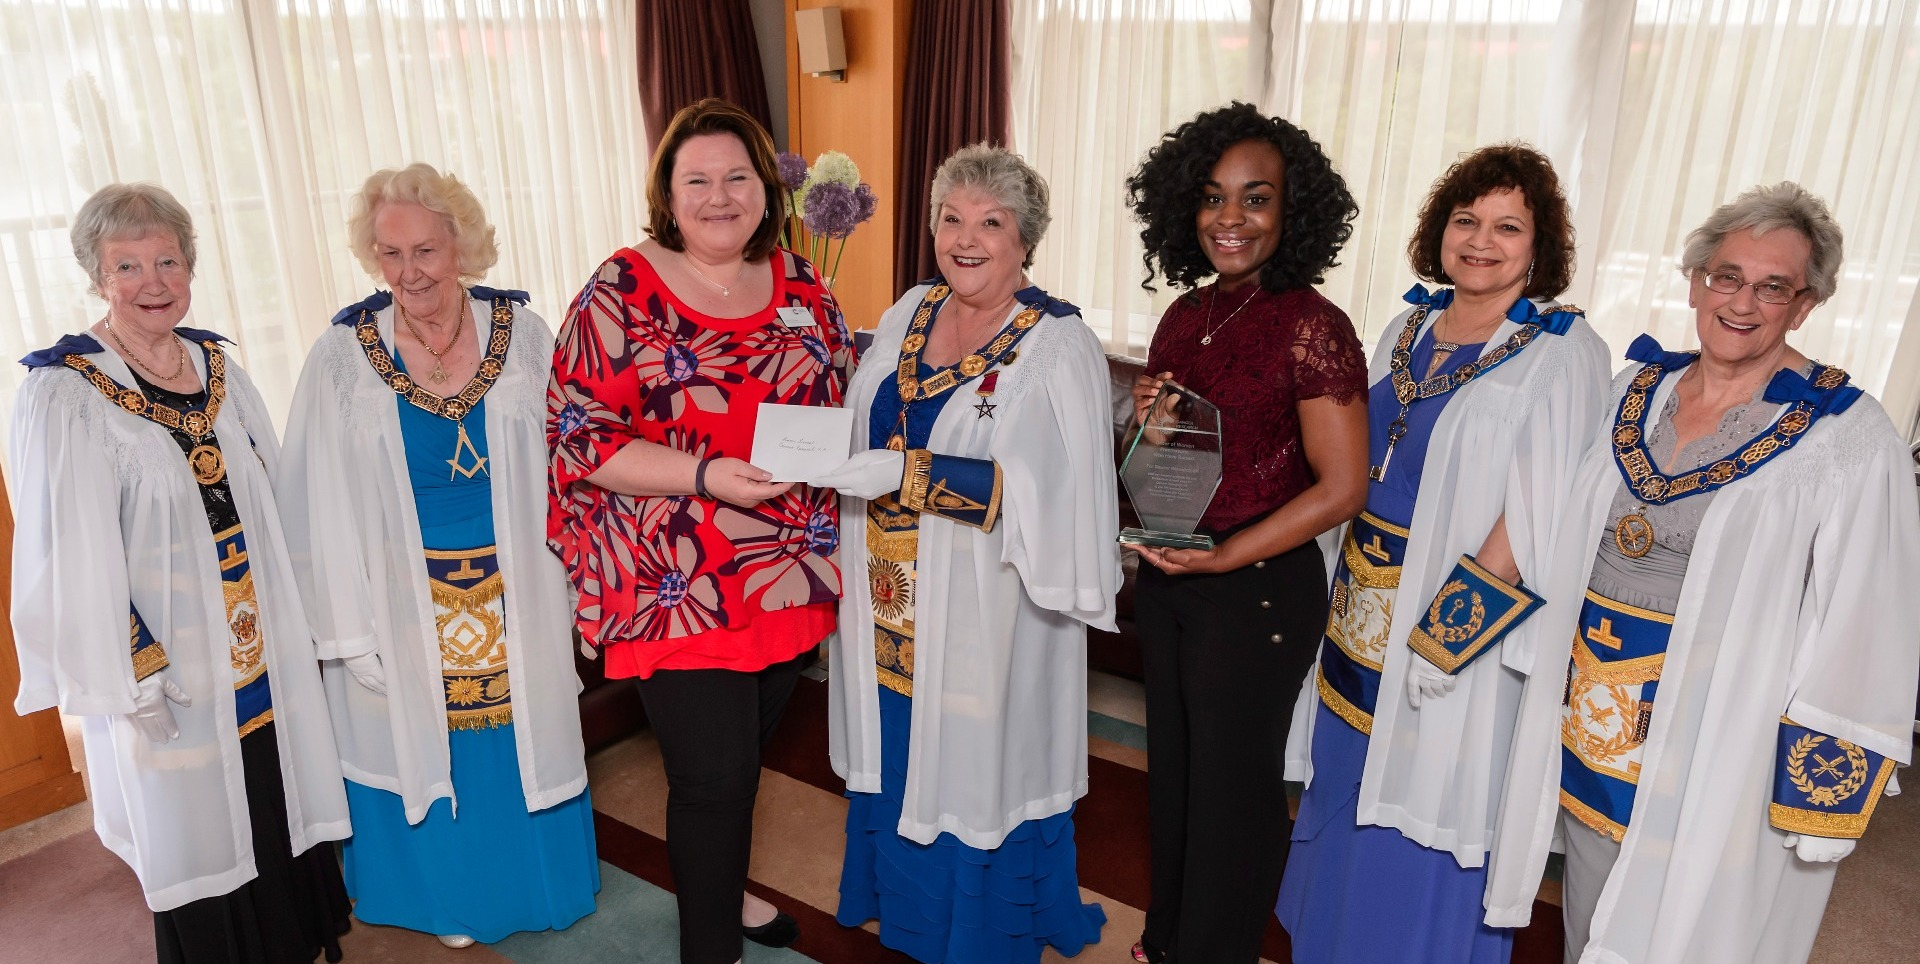 Who's Who | The Order of Women Freemasons